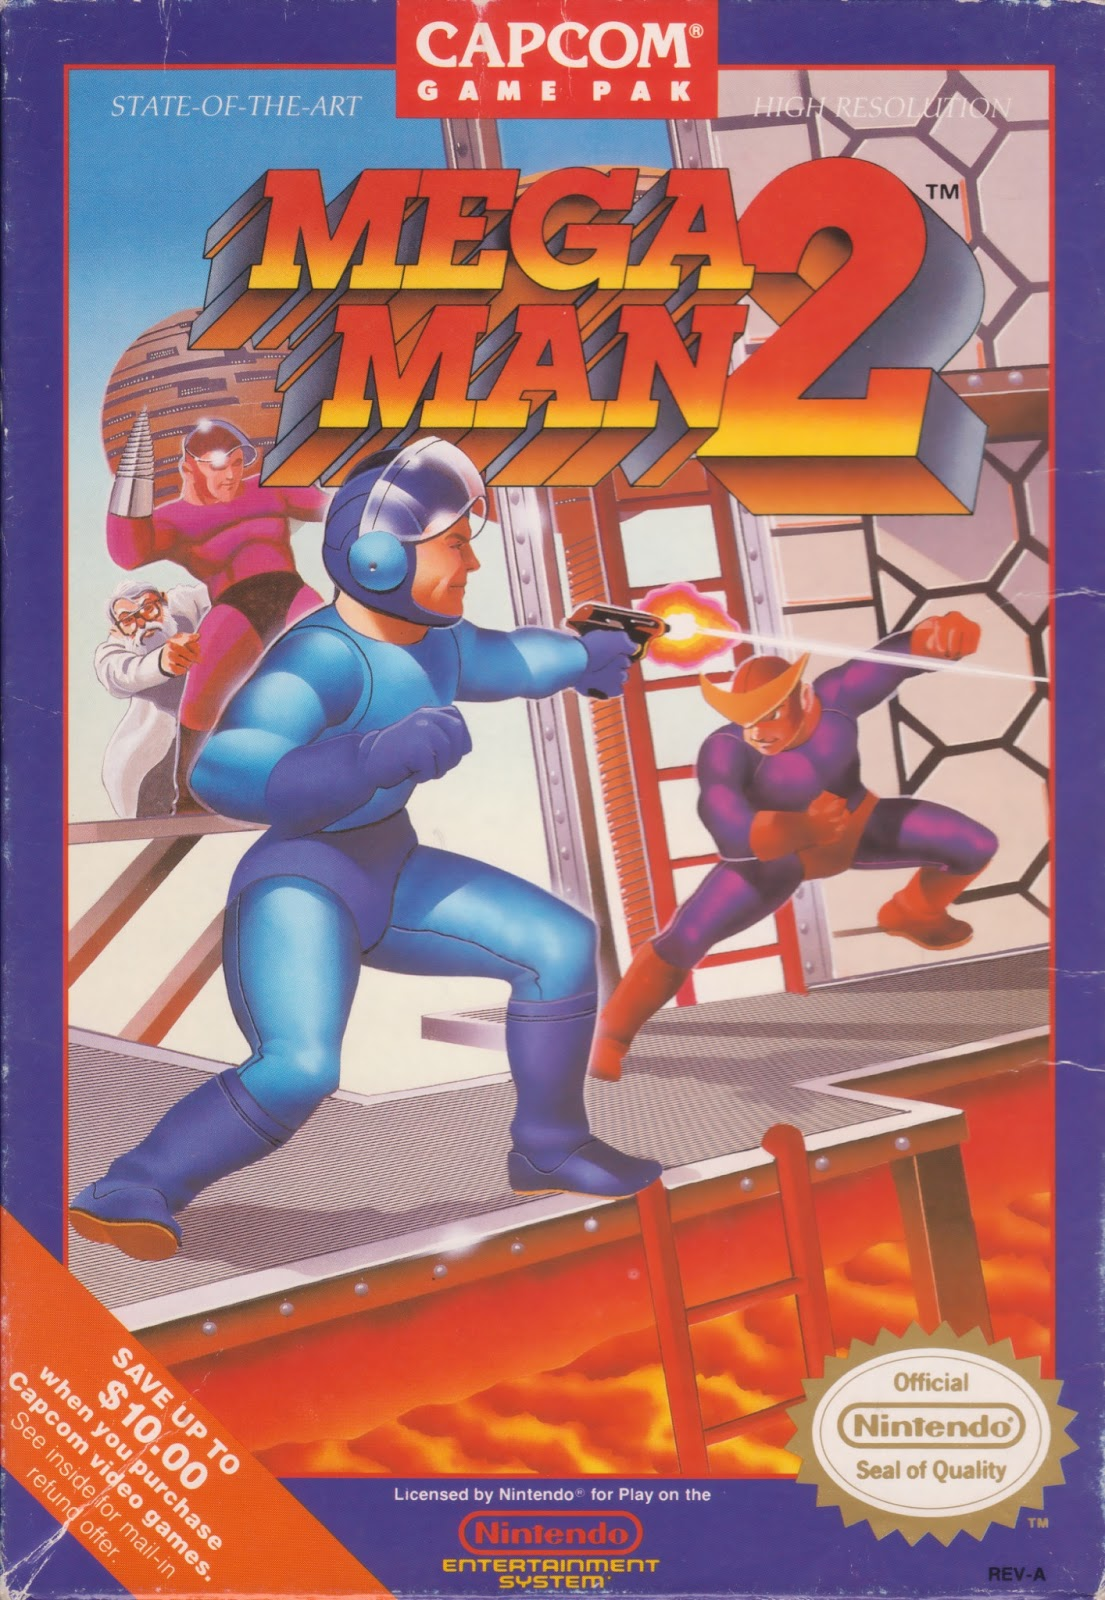 Game cover for Mega Man 2